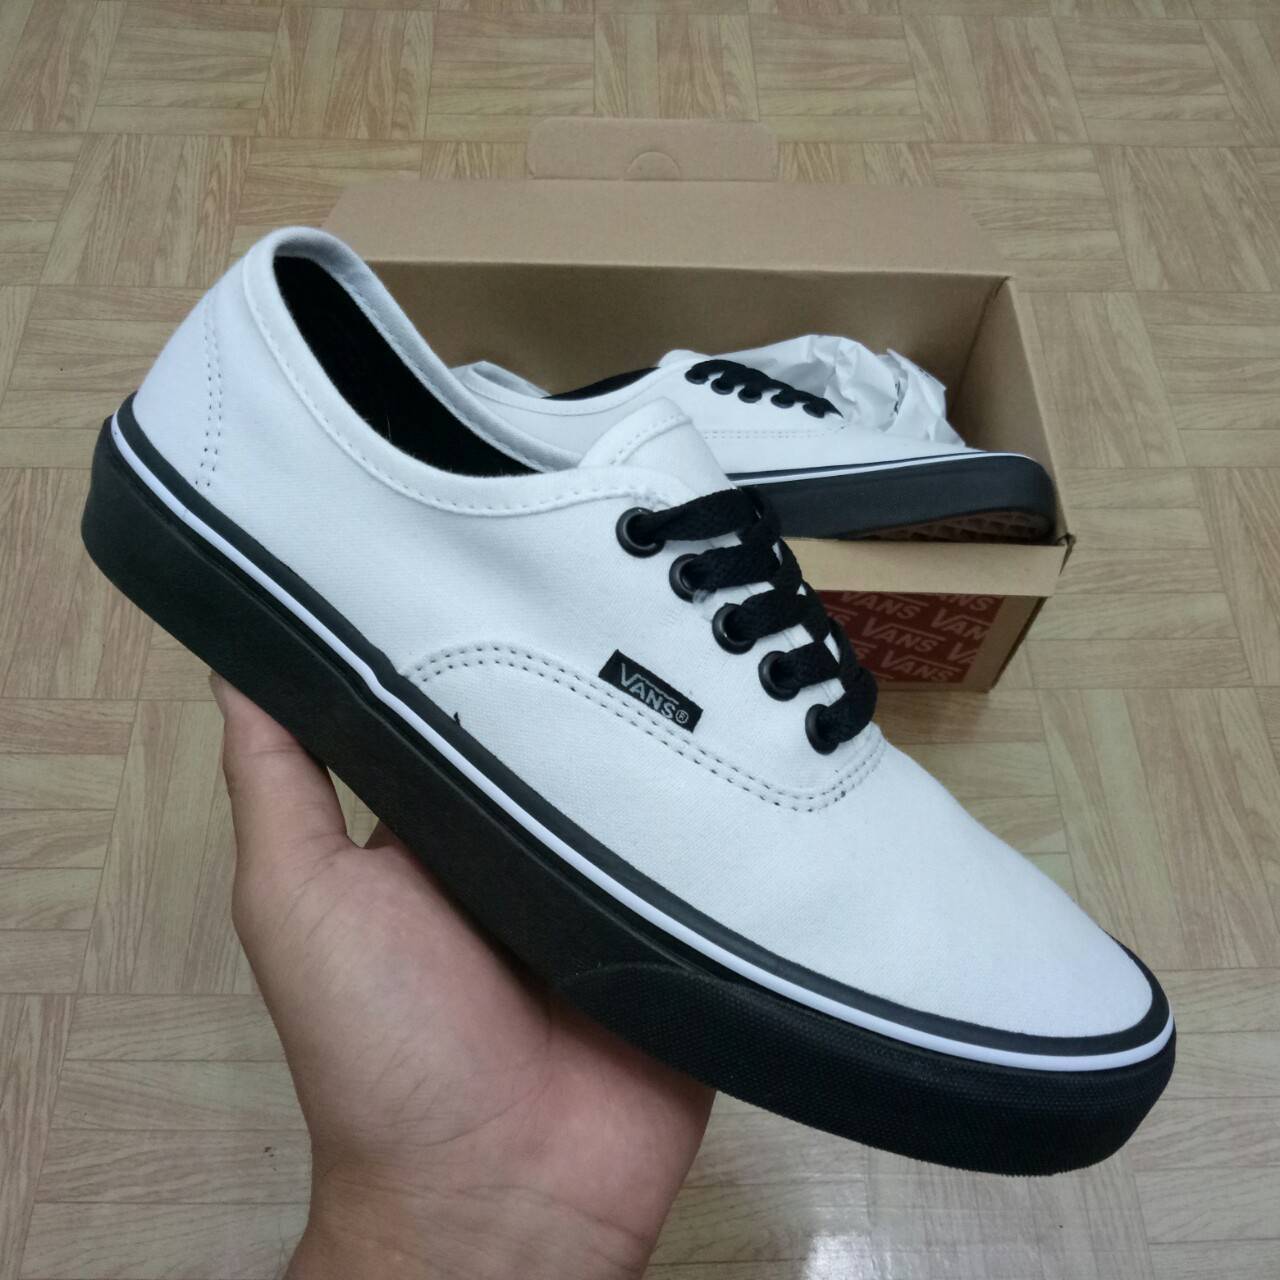 SEPATU VANS AUTHENTIC WHITE BLACK PREMIUM WAFFLE DT BNIB (Brand New In Box)  FULL TAG BARCODE MADE IN CHINA 0dc1d75116